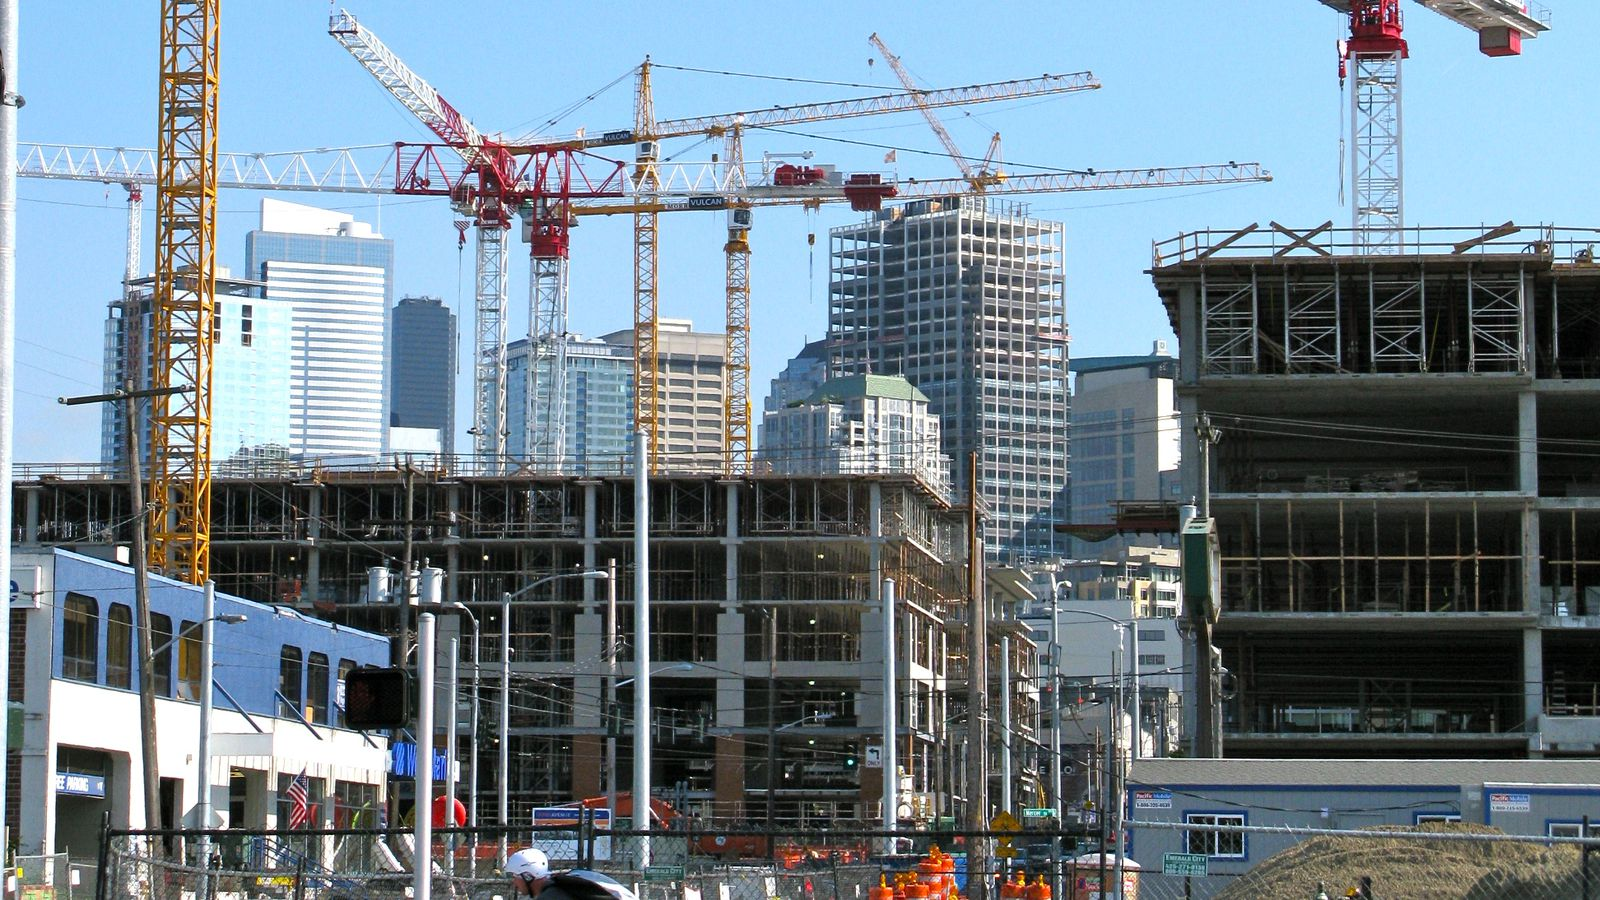 downtown seattle development had a record breaking 2016